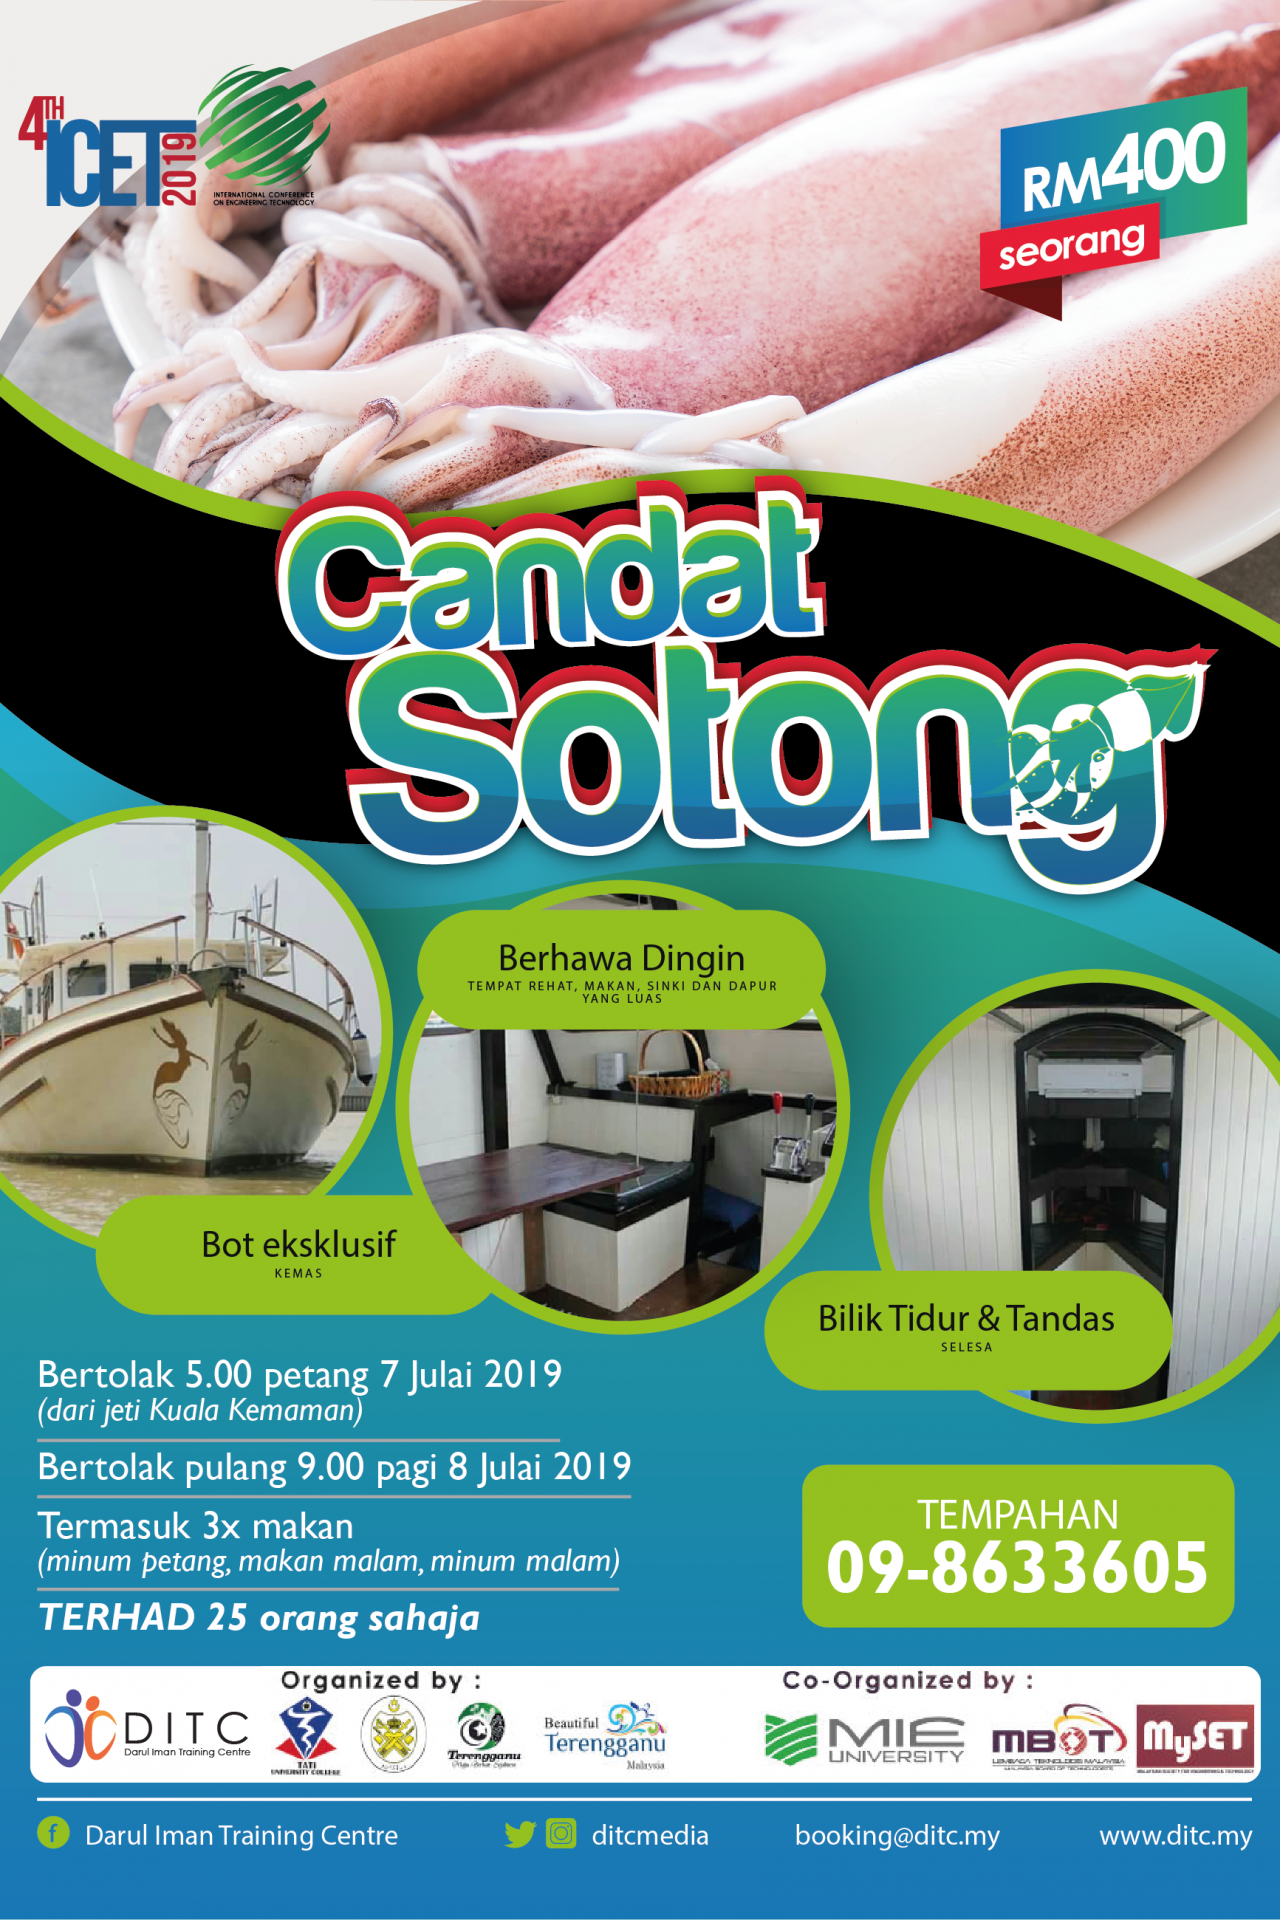 Candat sotong-02-02